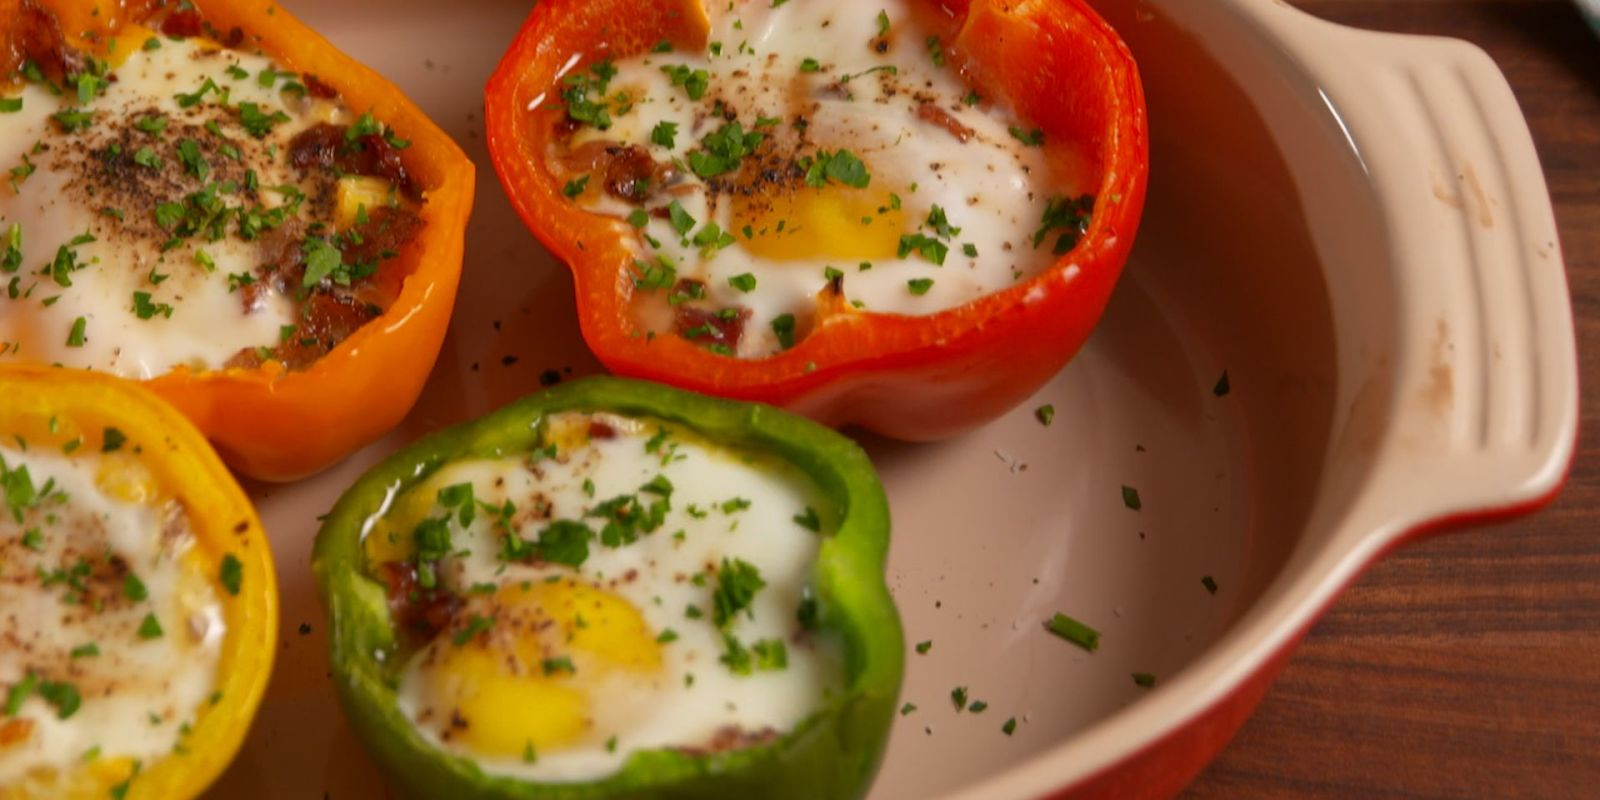 Best Pepper Egg In A Hole How To Make Pepper Egg In A Hole